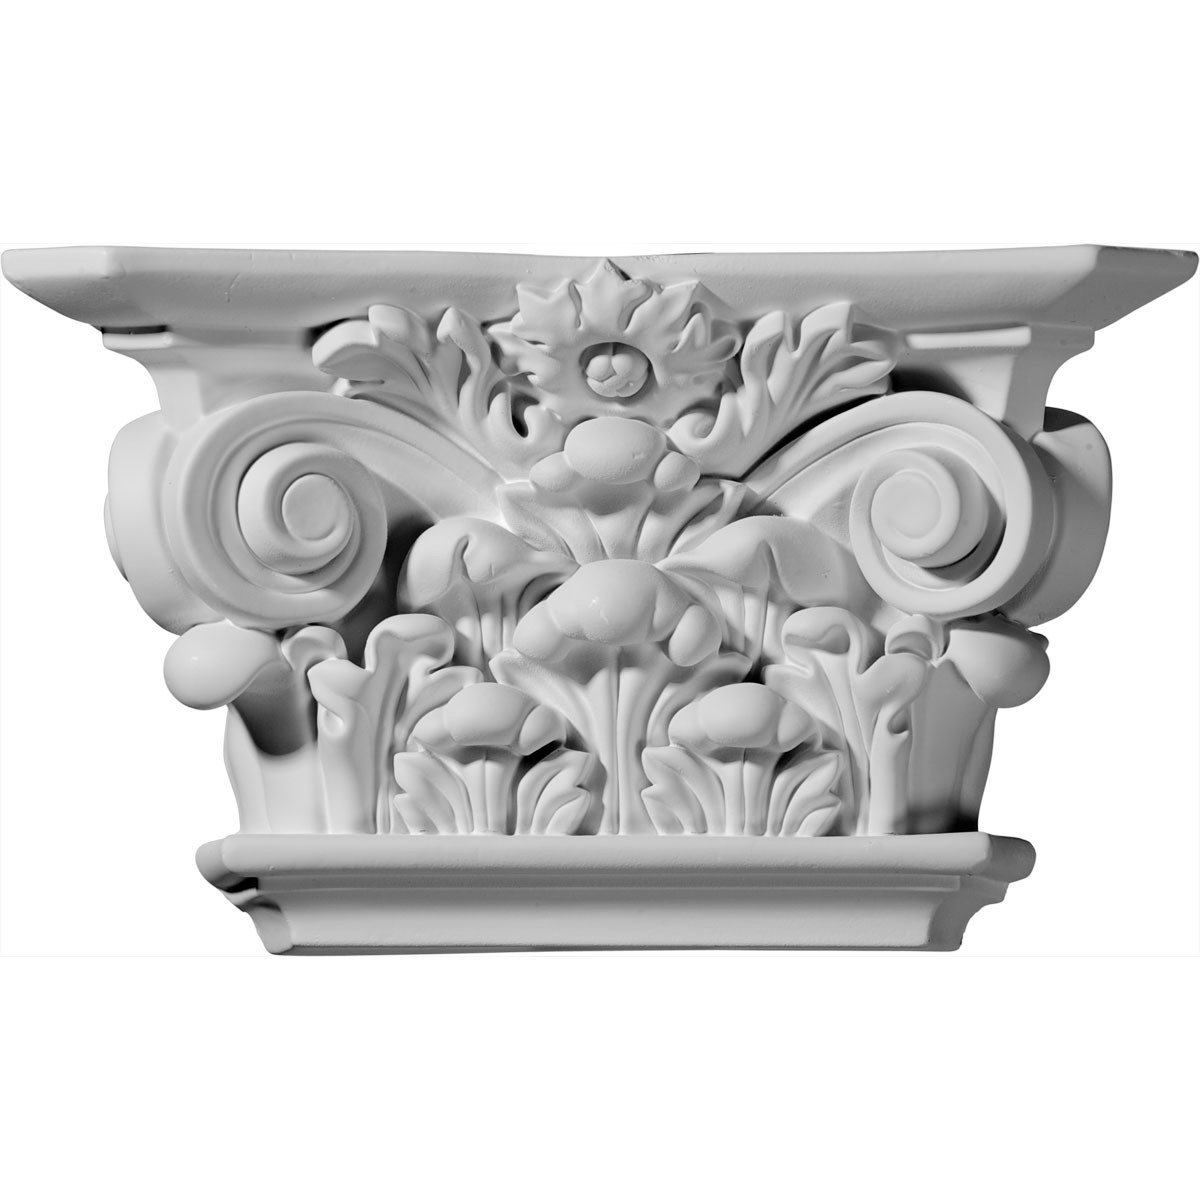 "EM-CAP10X06X03AC - 10 1/2""W x 6 1/8""H x 3""D Acanthus Leaf Capital (Fits Pilasters up to 6 3/4""W x 1""D)"